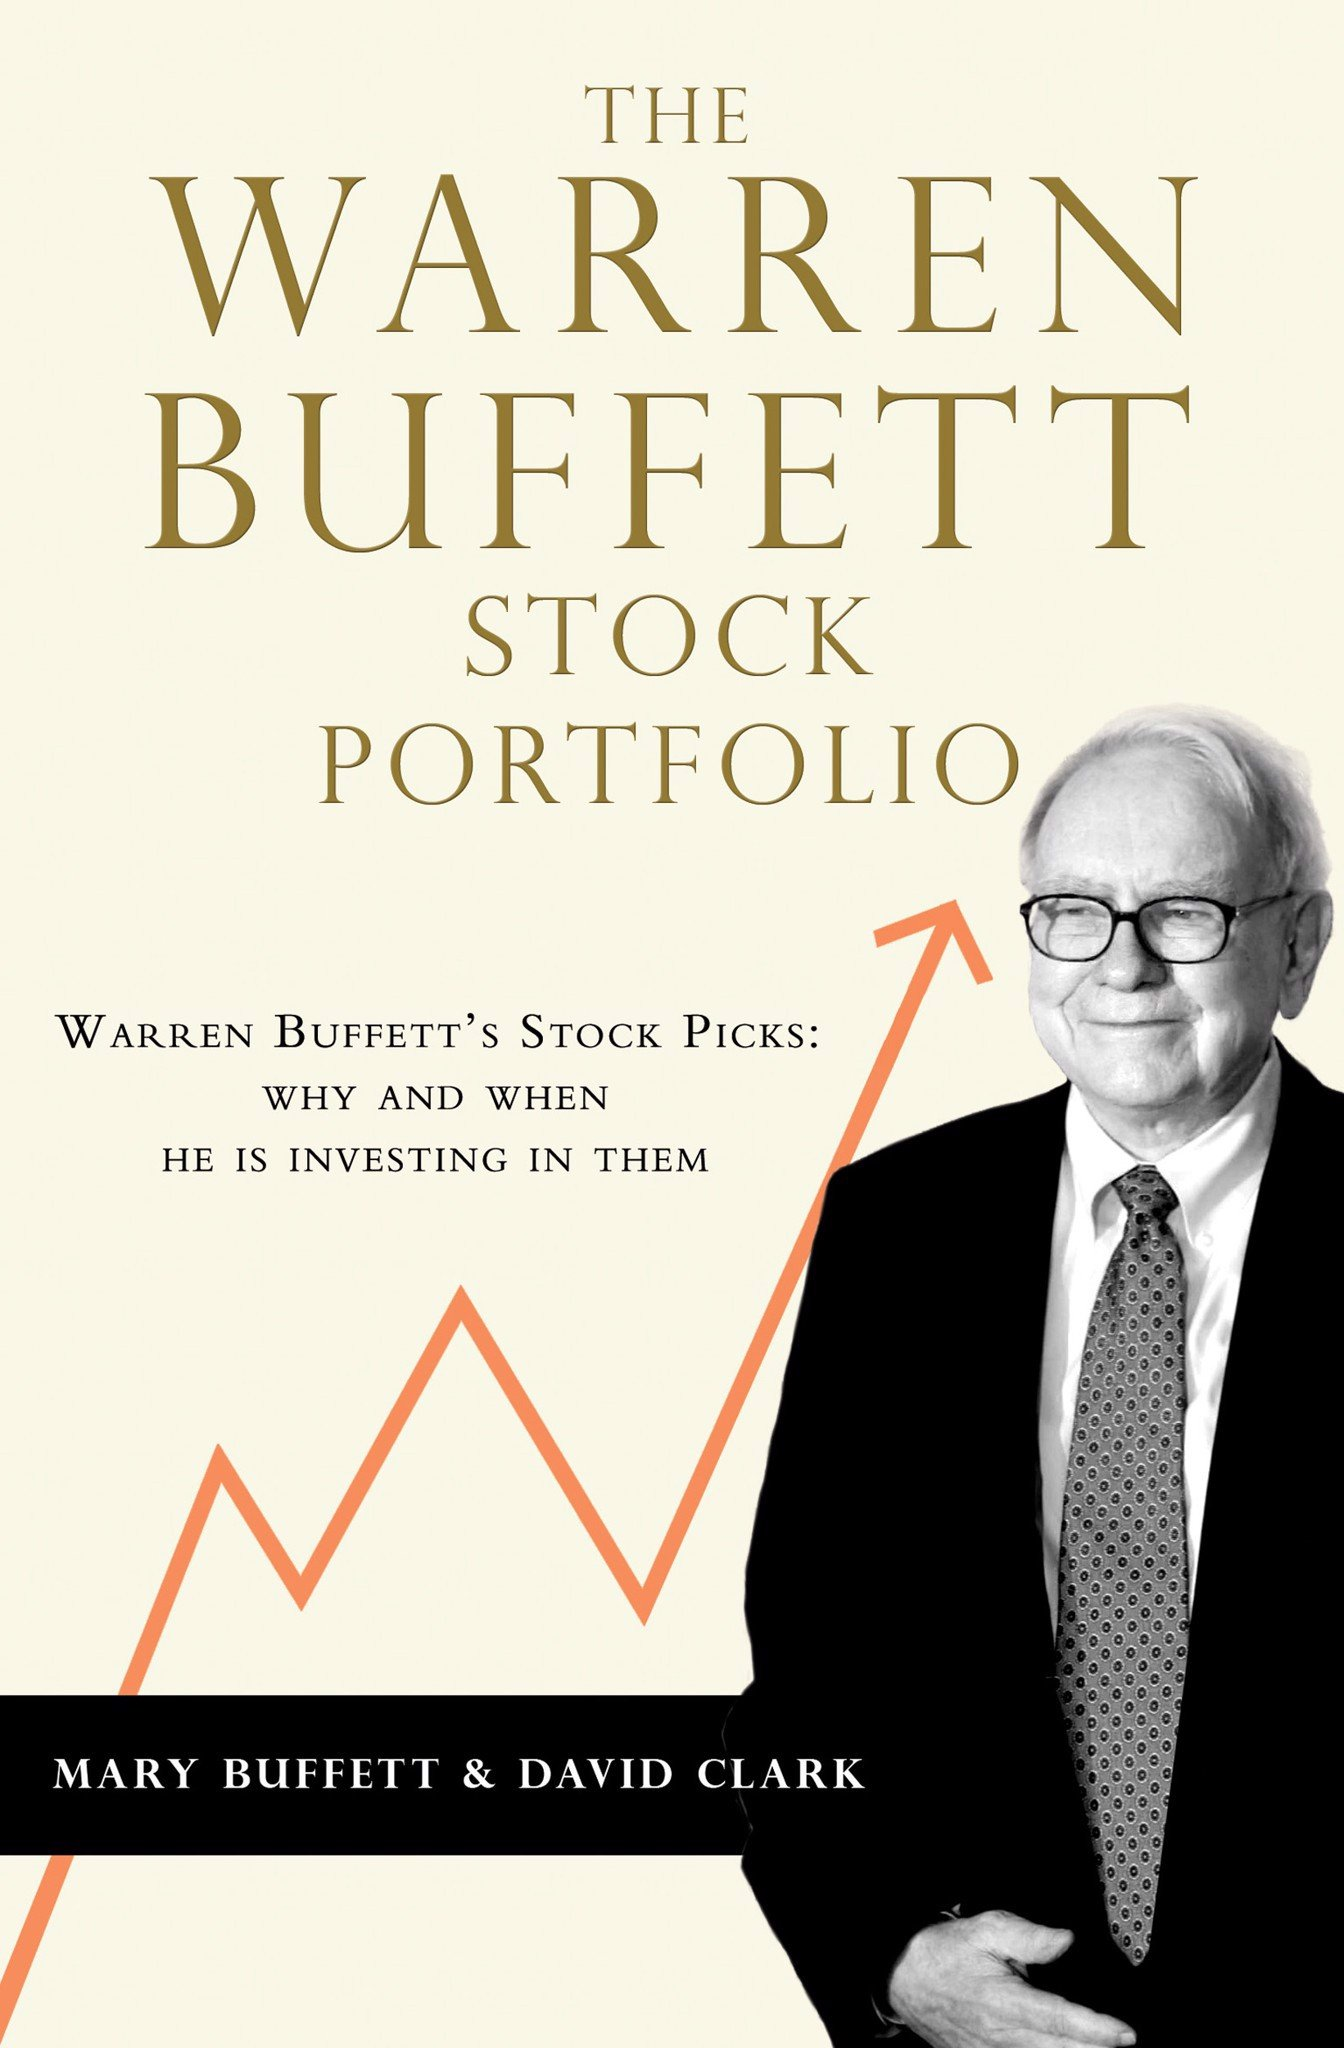 THE WARREN BUFFETT STOCK PORPA